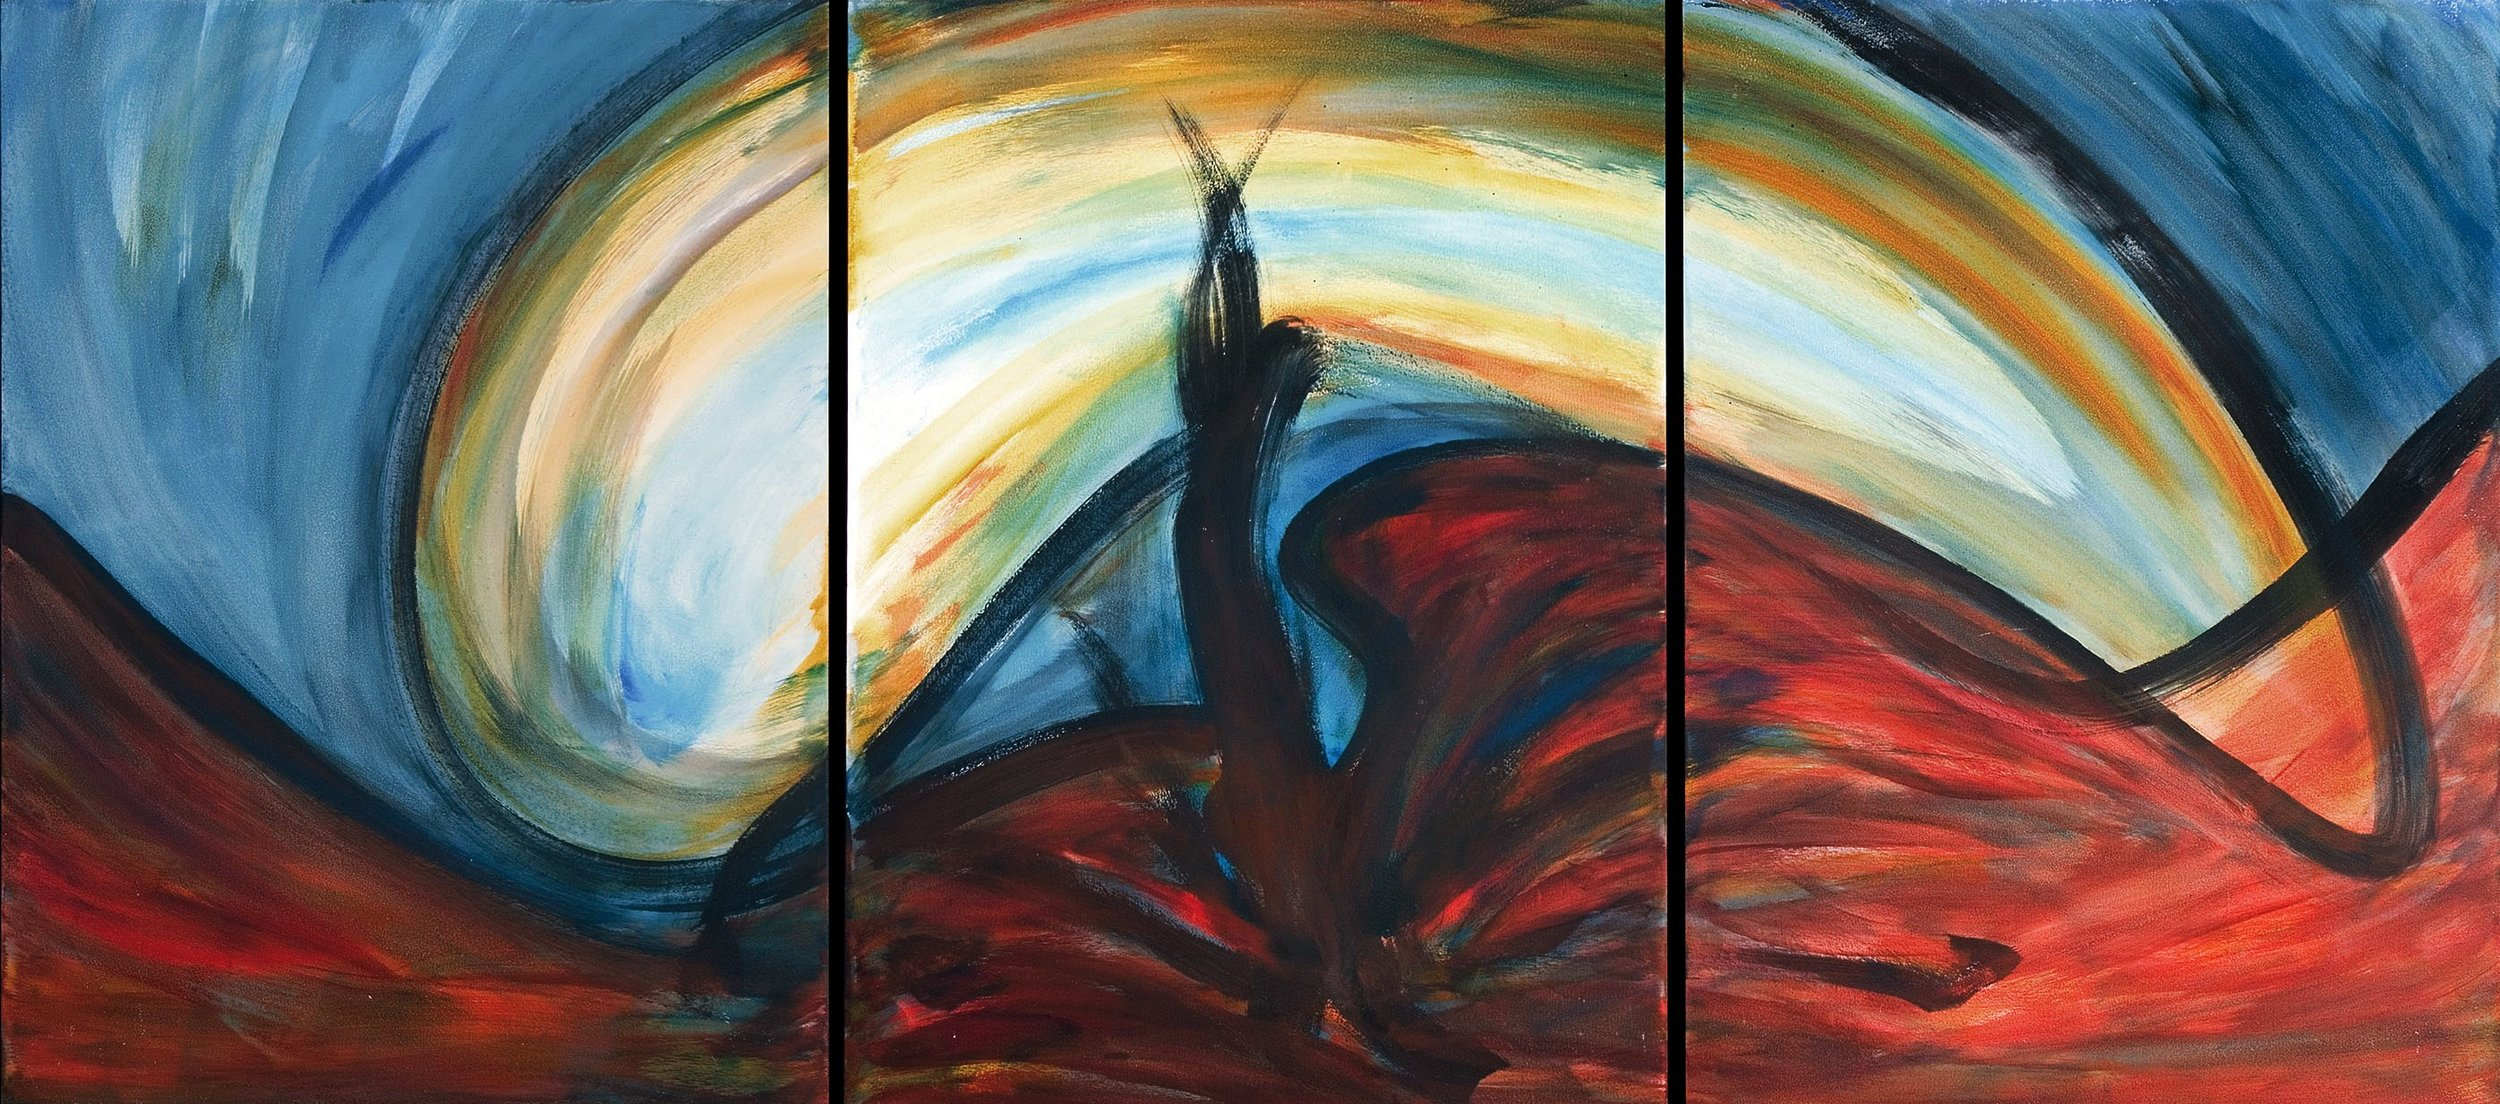 In Fear of War III  1991, acrylic on masonite, 32x72 in In the collection of the Dallas Holocaust Museum